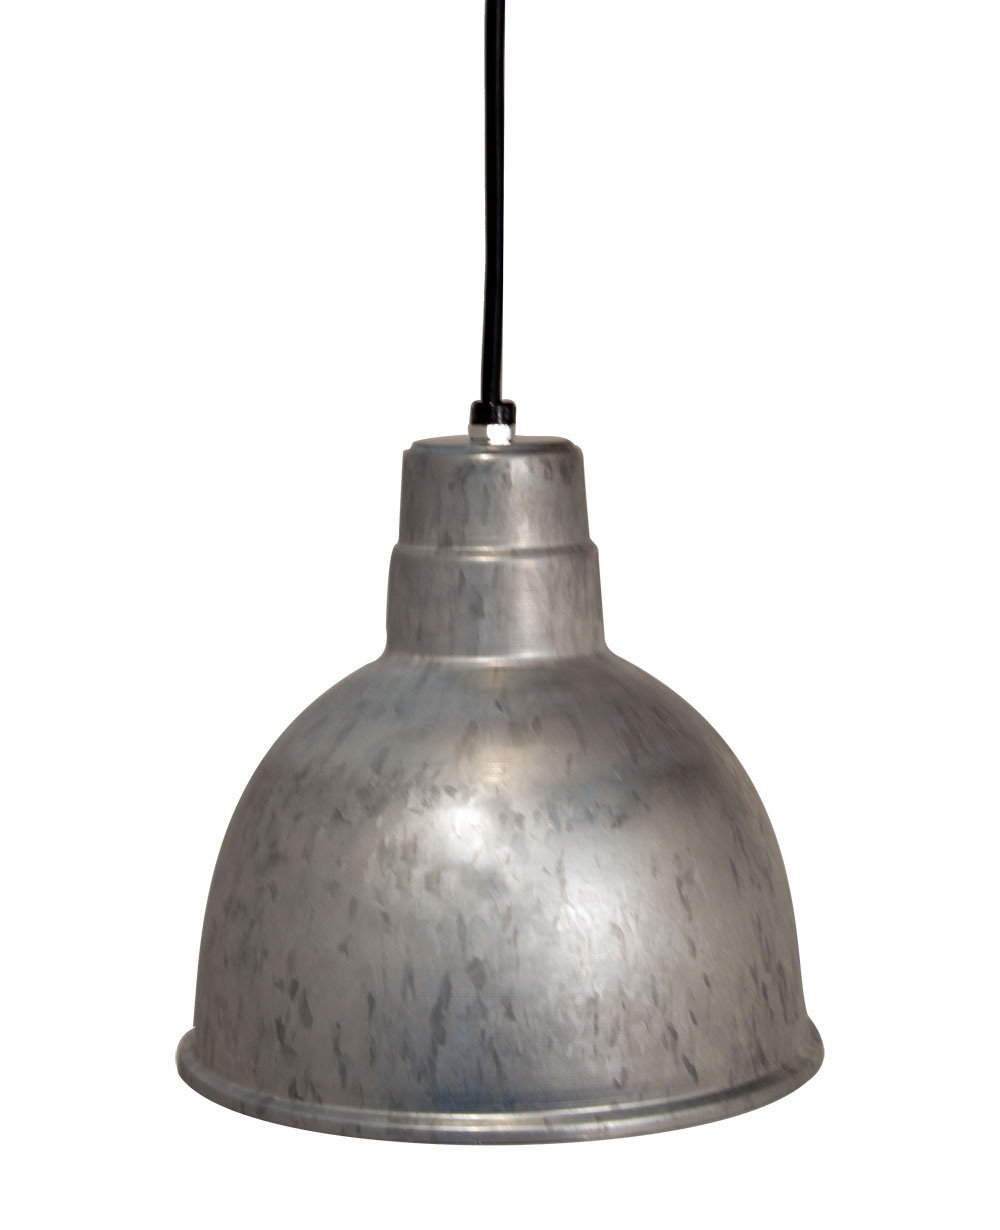 Newest Outdoor Barn Ceiling Lights In Home Decor: Perfect Galvanized Barn Light To Complete Stunning (View 19 of 20)